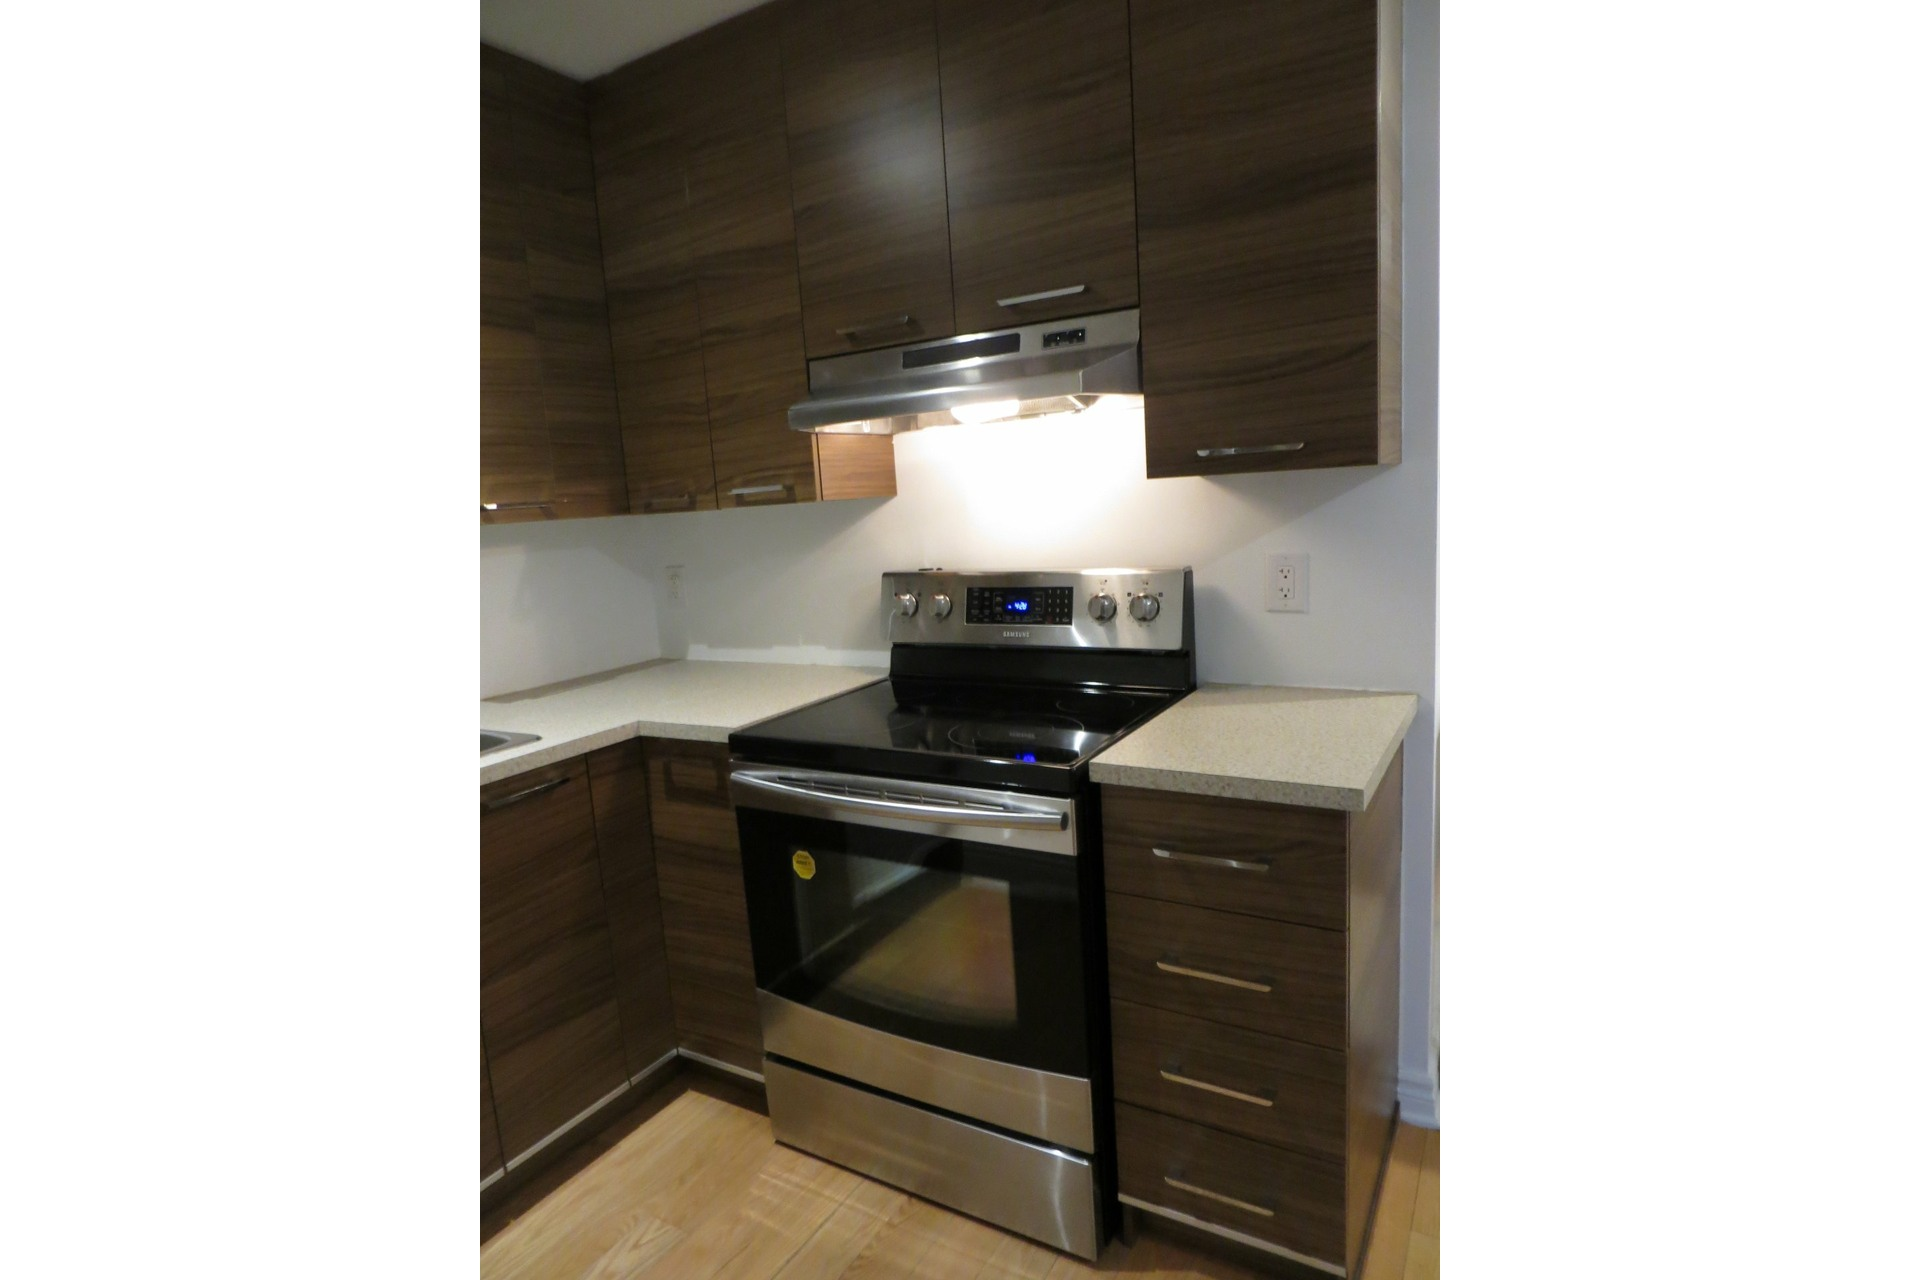 image 14 - Apartment For rent Laval-des-Rapides Laval  - 5 rooms